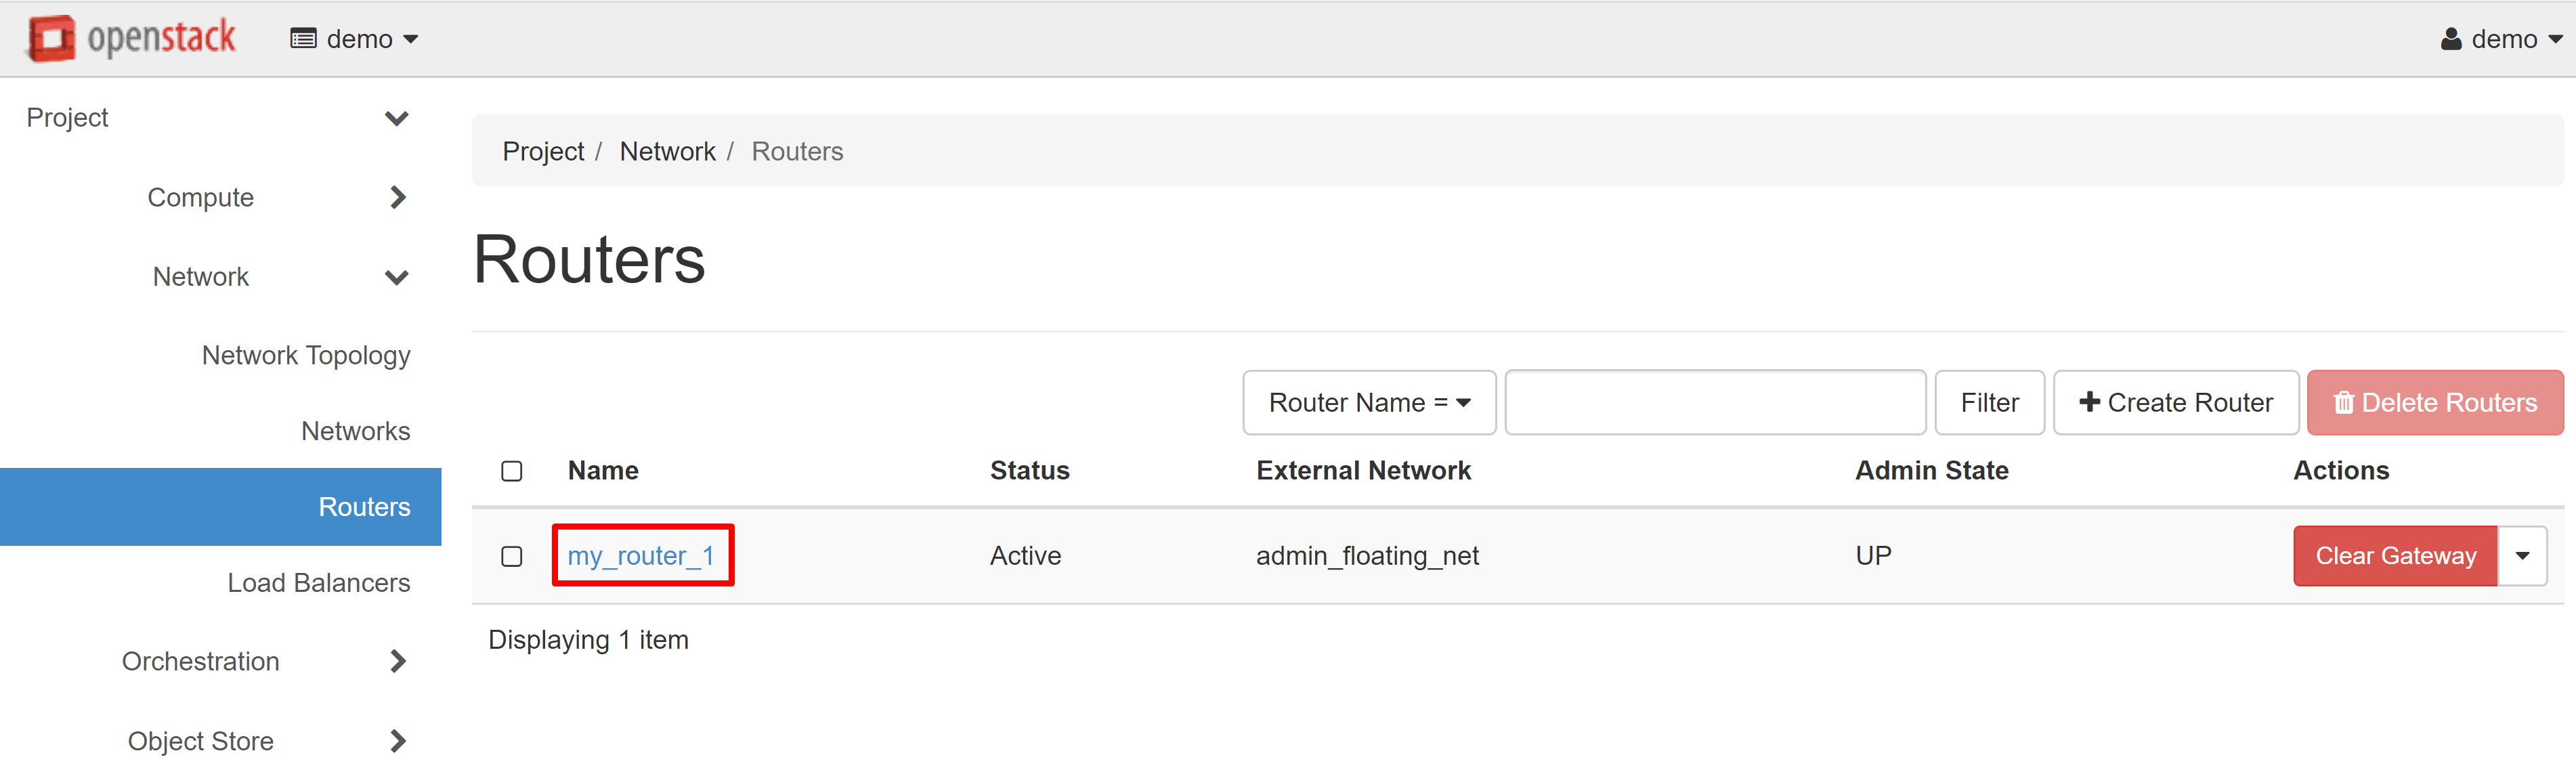 CREATE ROUTER